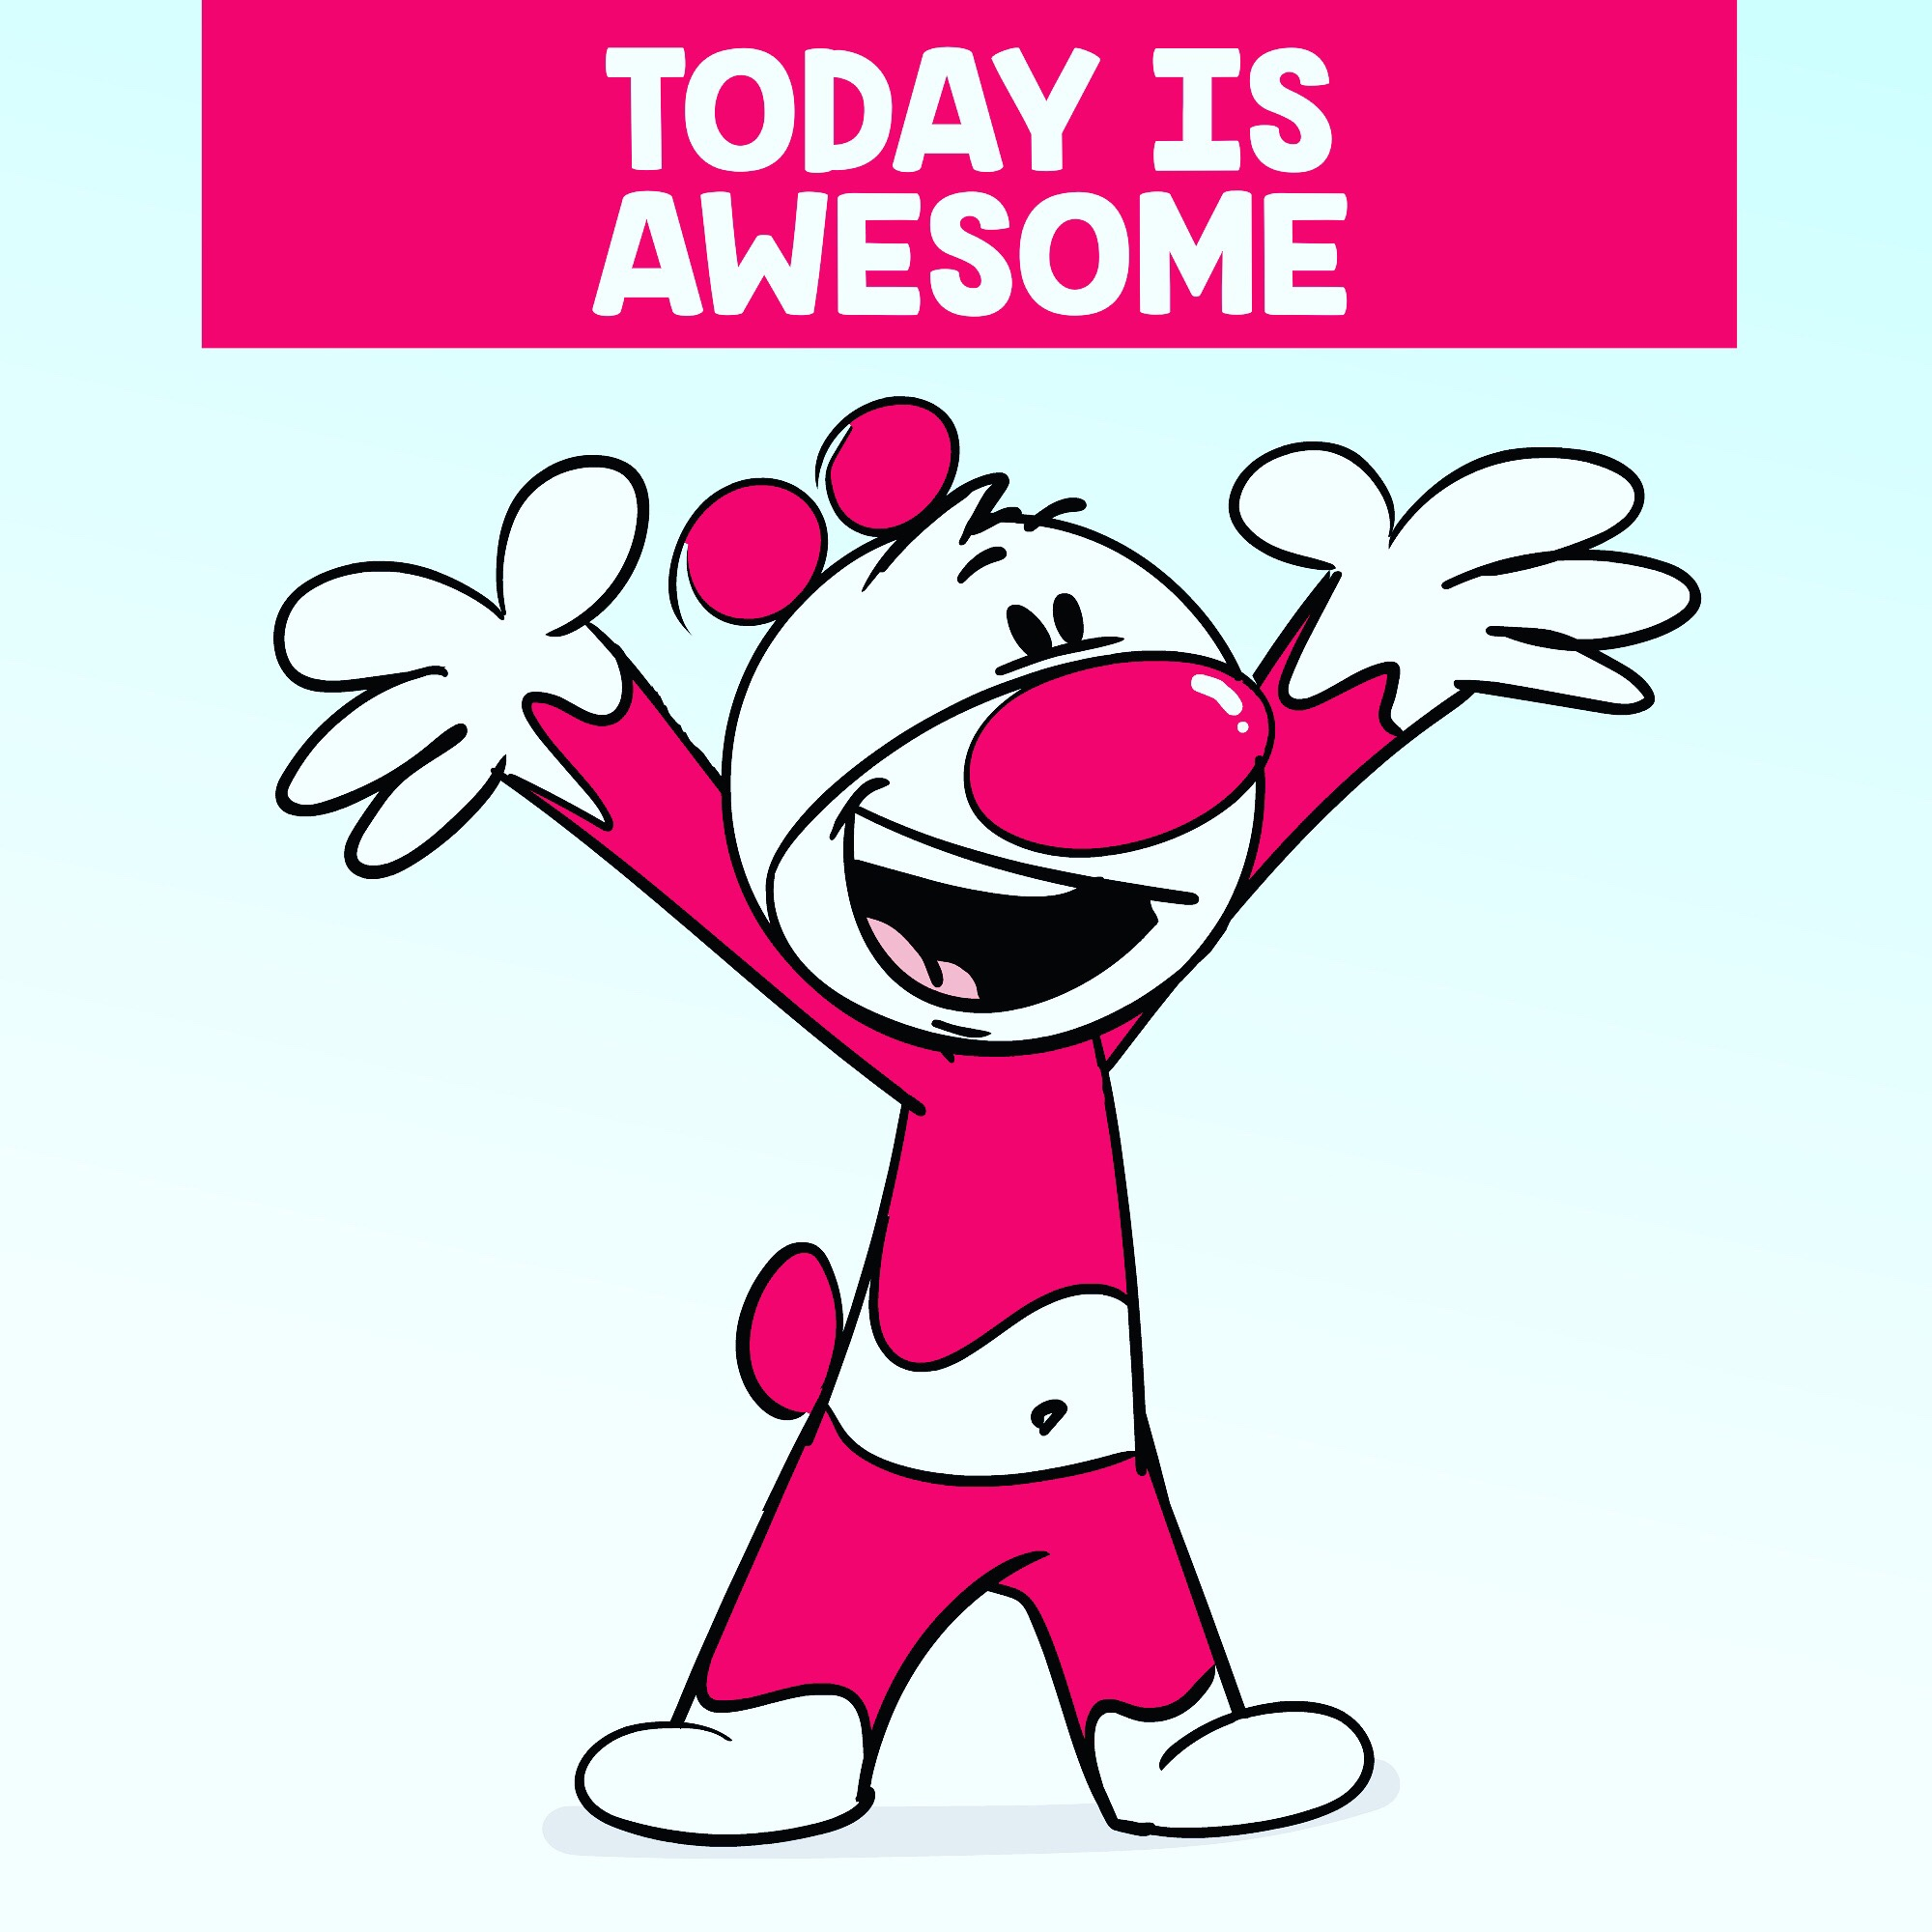 Piwooz is having an awesome day